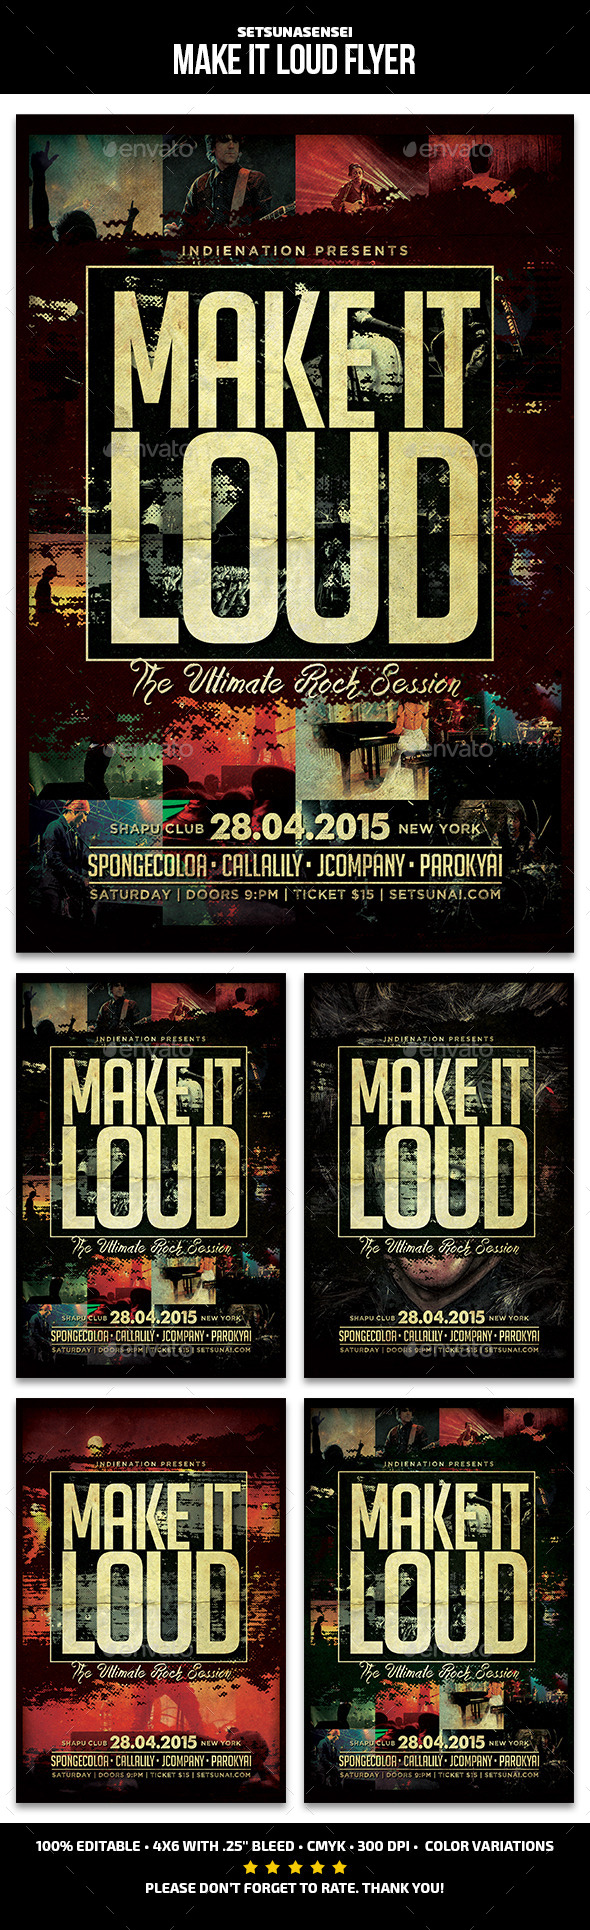 Make It Loud Flyer - Concerts Events